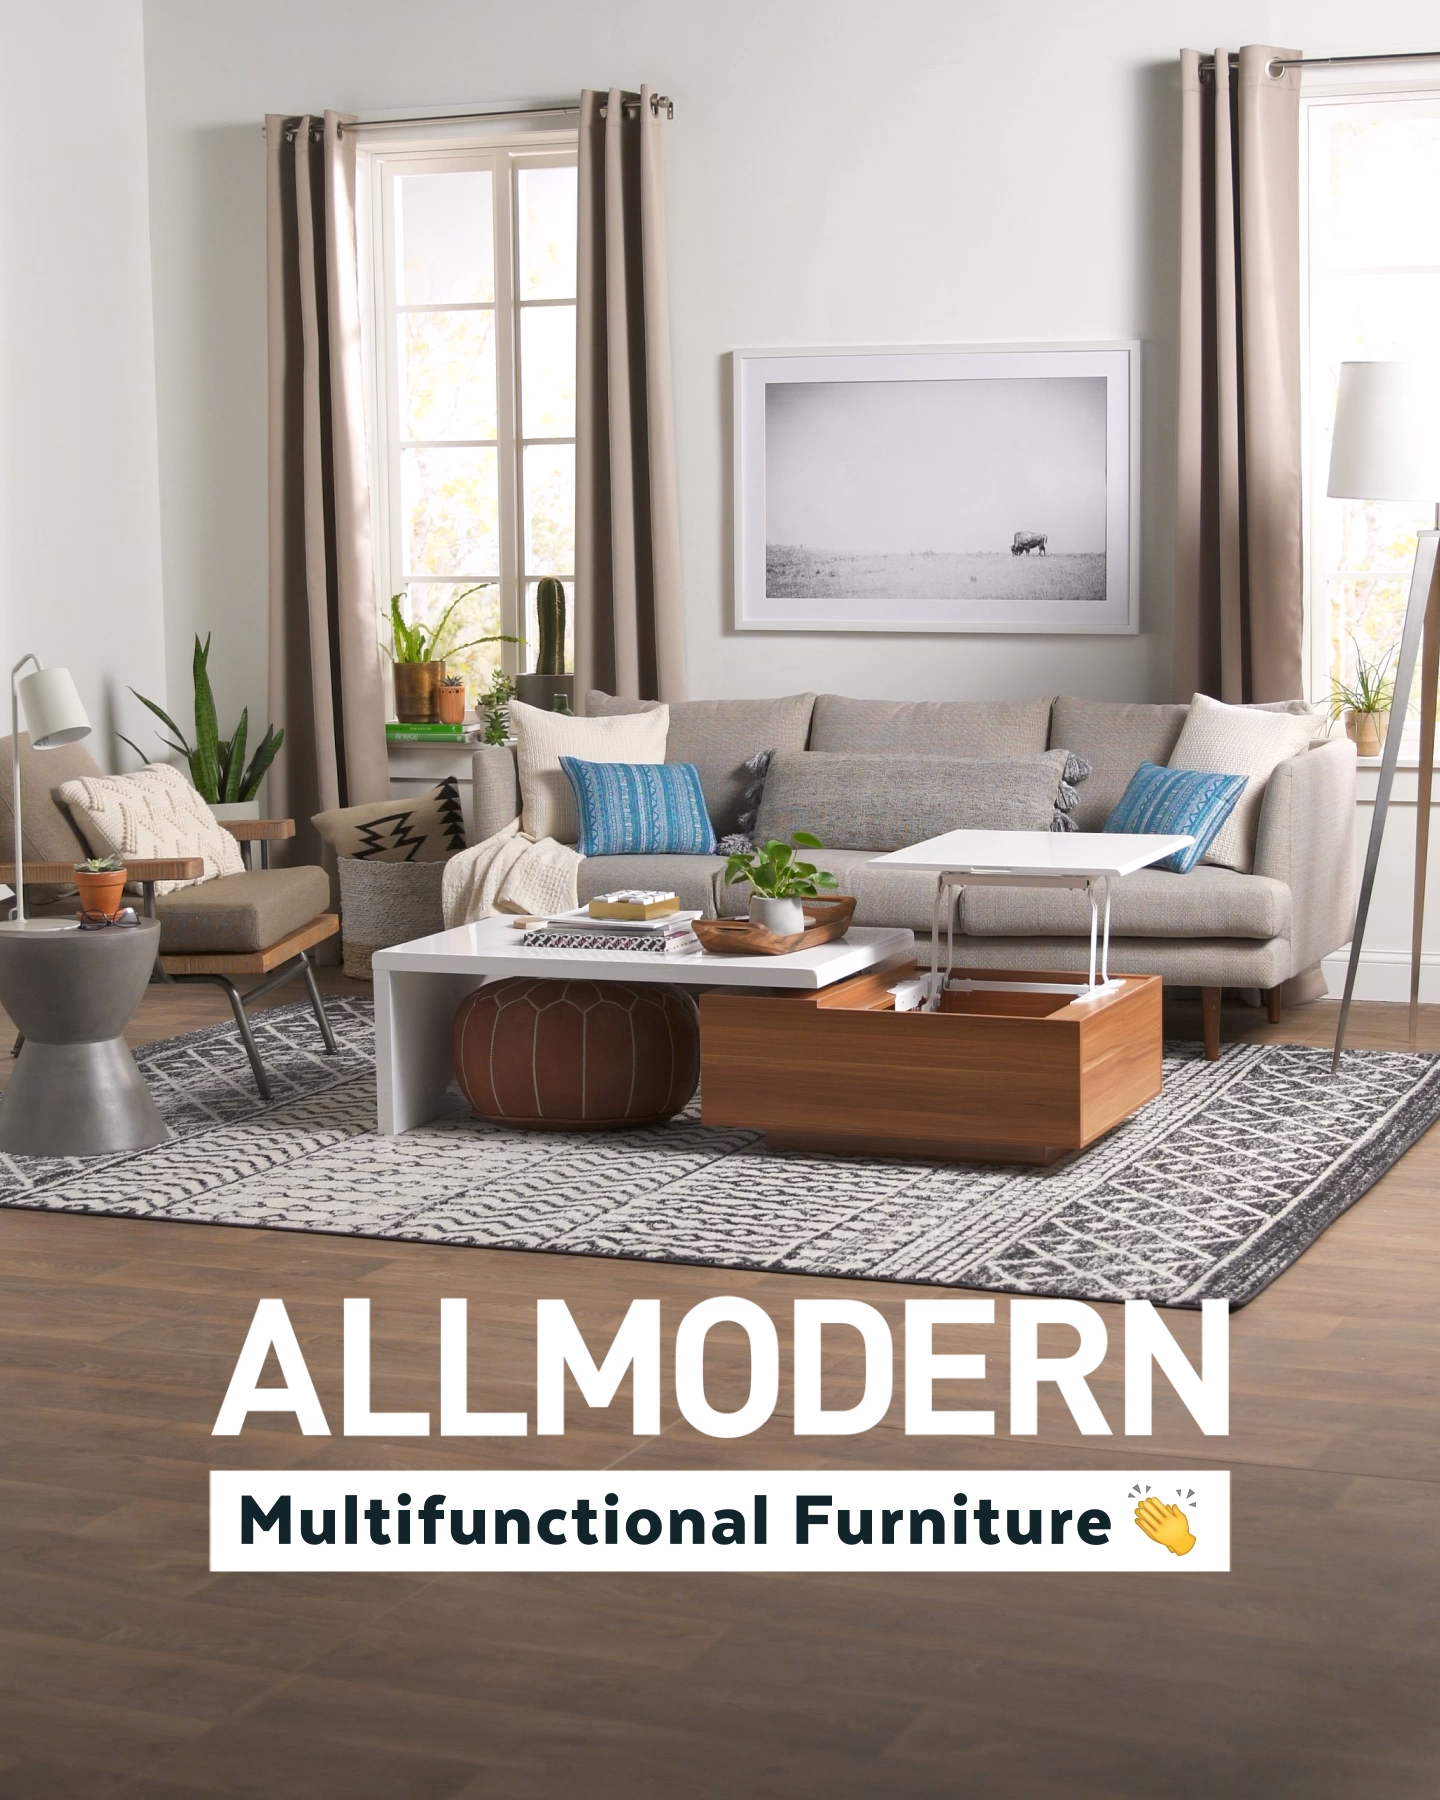 Shop AllModern for up to 65% off modern furniture and free shipping. AllModern has the 2-in-1 furniture you need to keep up with your busy life. Whether you're on the hunt for a storage coffee table, sleeper sofa, or wall shelf, we've got you covered. (And don't forget the fun stuff – like art, rugs, and pillows!) For even more ideas to help streamline and simplify your living room, bedroom, or entryway, sign up for AllModern emails.